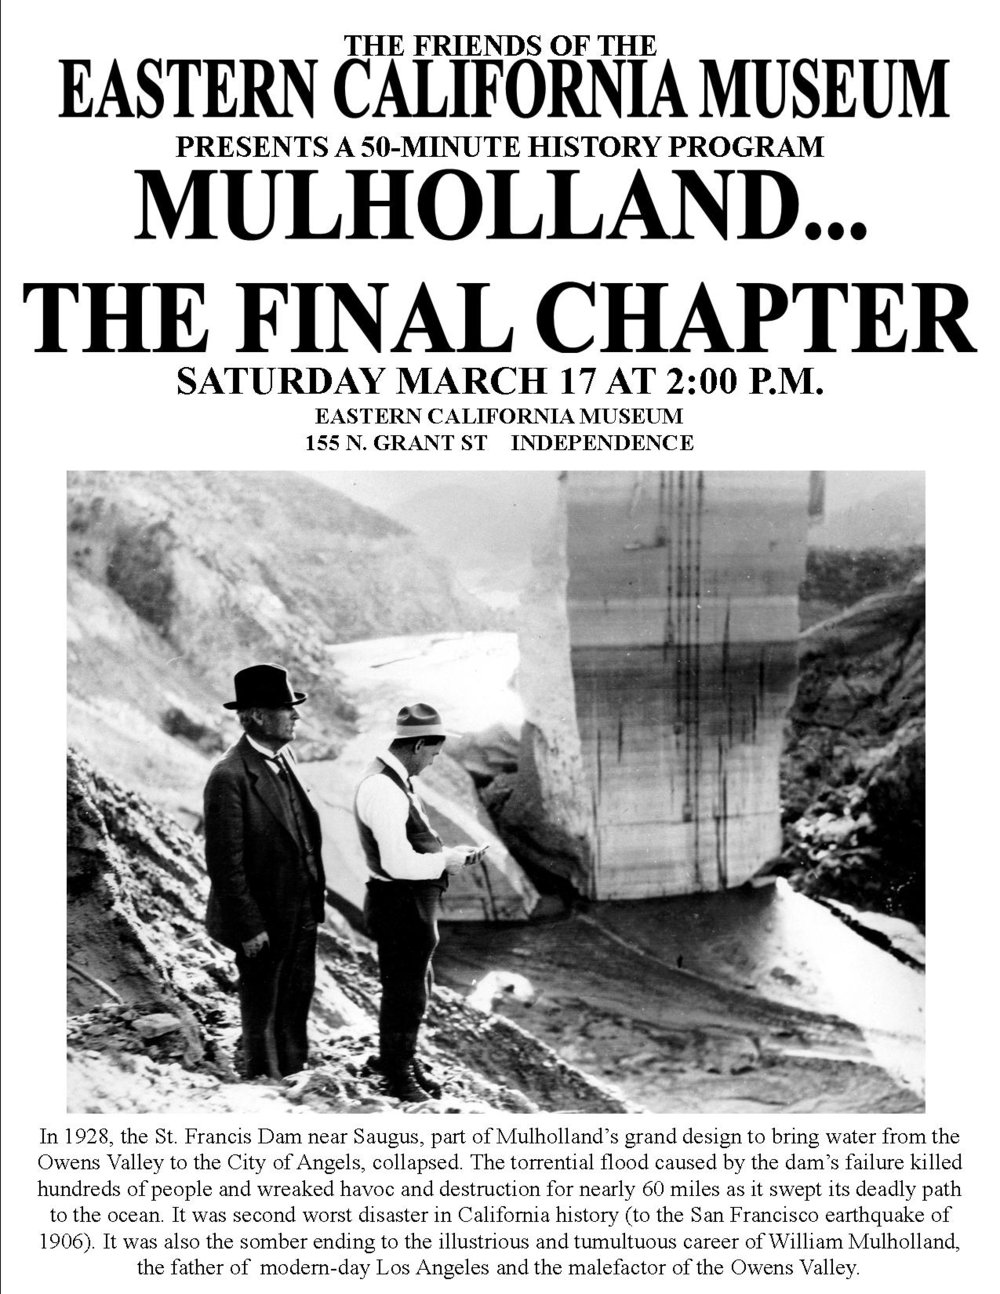 Mulholland-The Final Chapter ECM March 17 2018.jpg